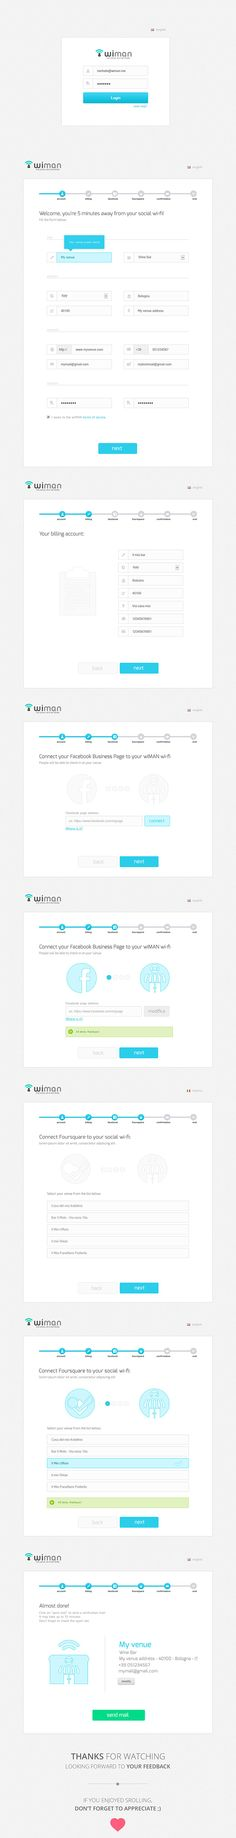 Wiman registration wizard in six easy steps by Alessio De Feudis, via Behance